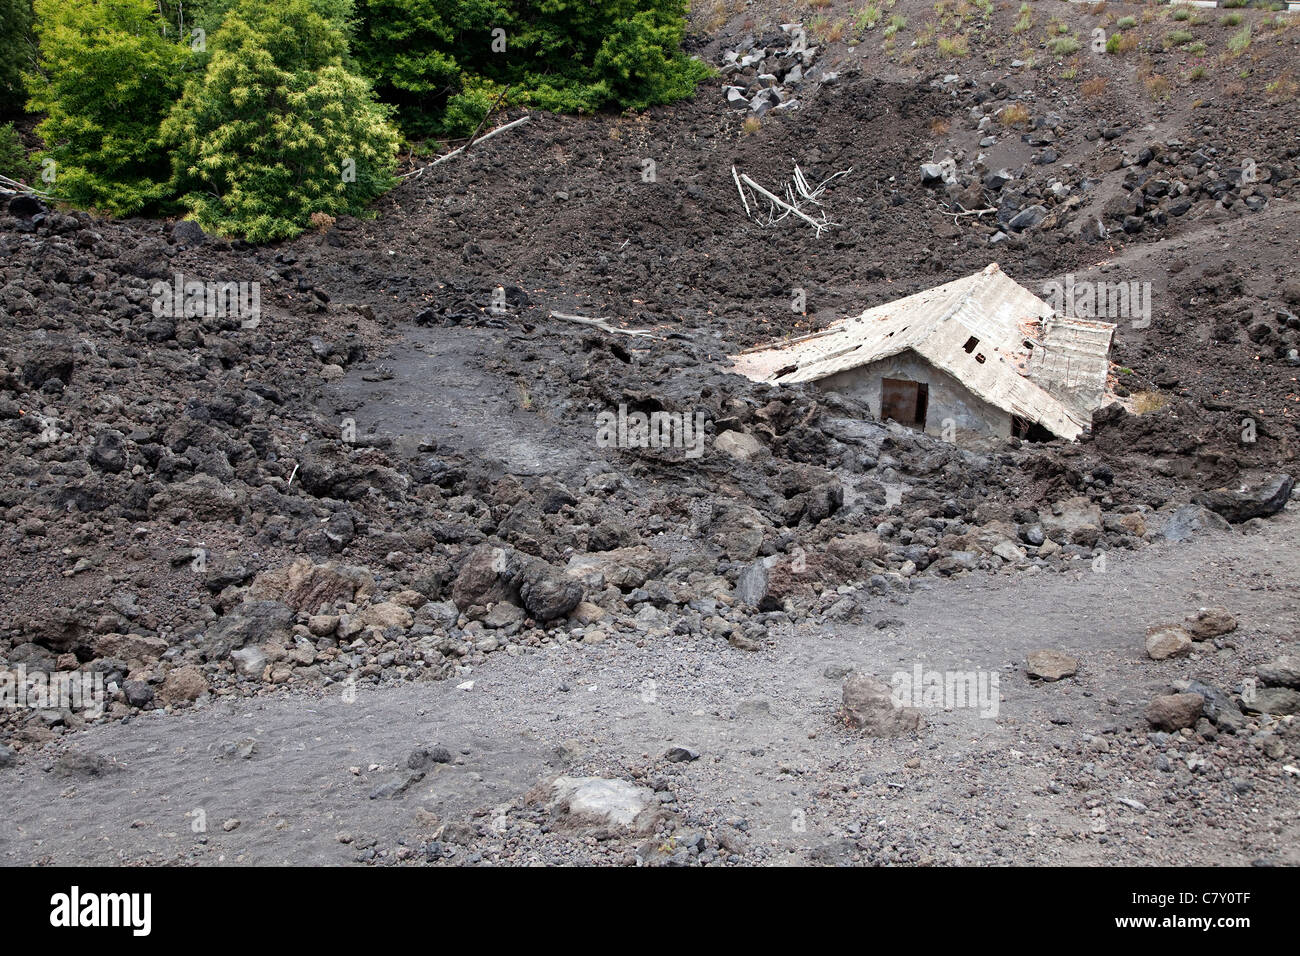 Natural disasters, abandoned house destroyed by the lava, Mount Etna, Etna volcano, Sicily, Sicilia, Italy - Stock Image